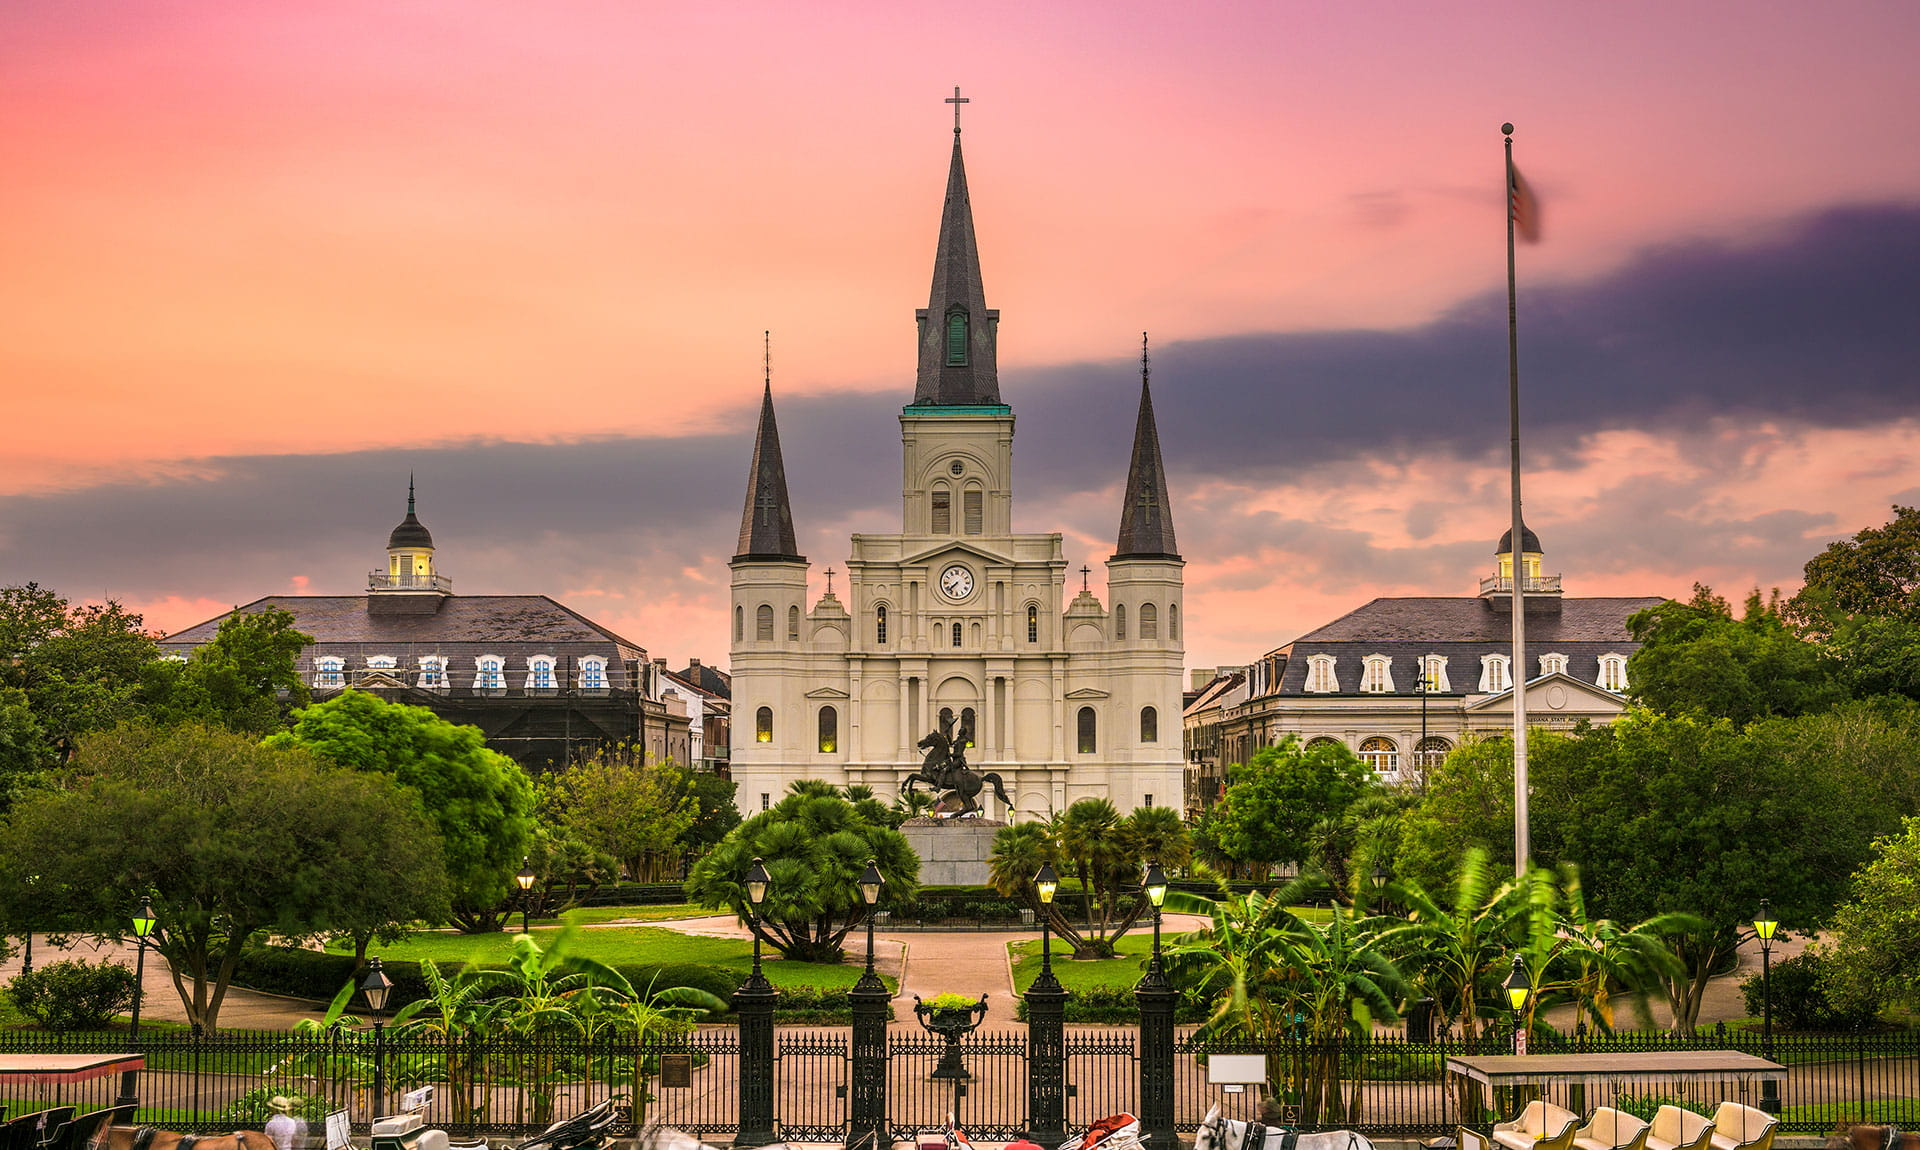 Jackson Square, New Orleans during Sunset